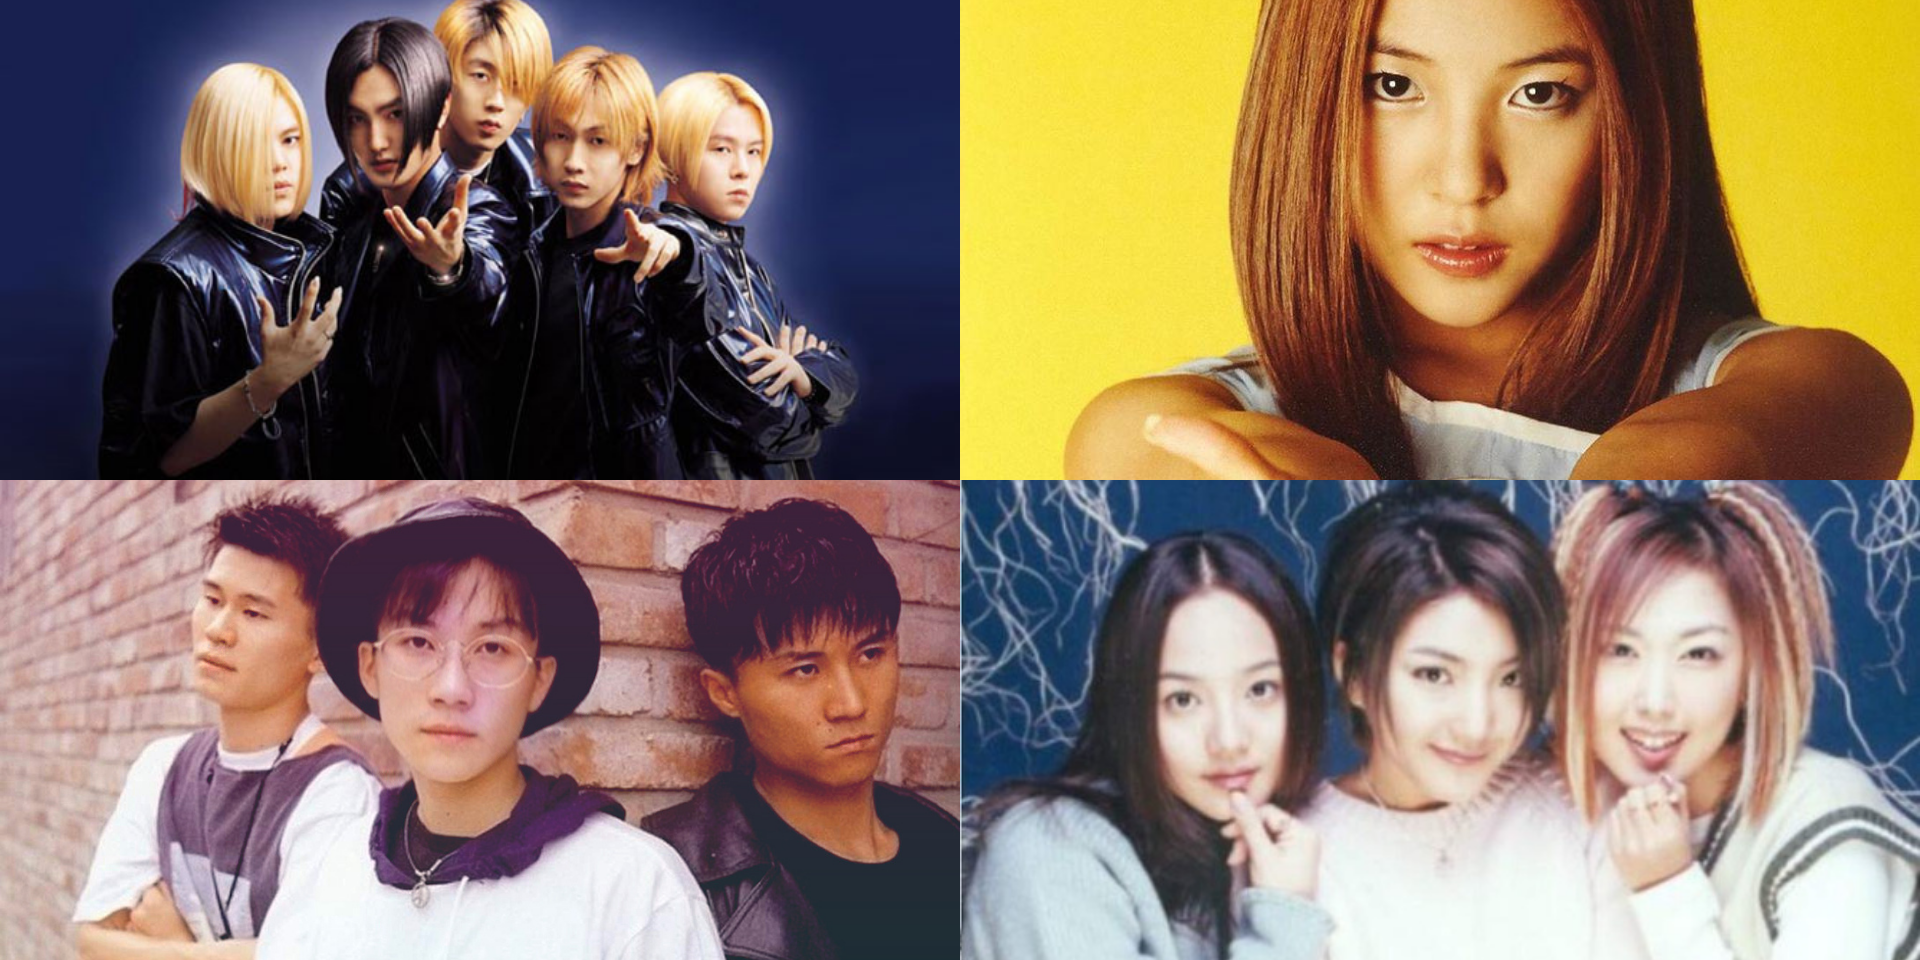 Bandwagon's guide to K-pop pioneers: Seo Taiji and Boys, H.O.T., BoA, SES, and more